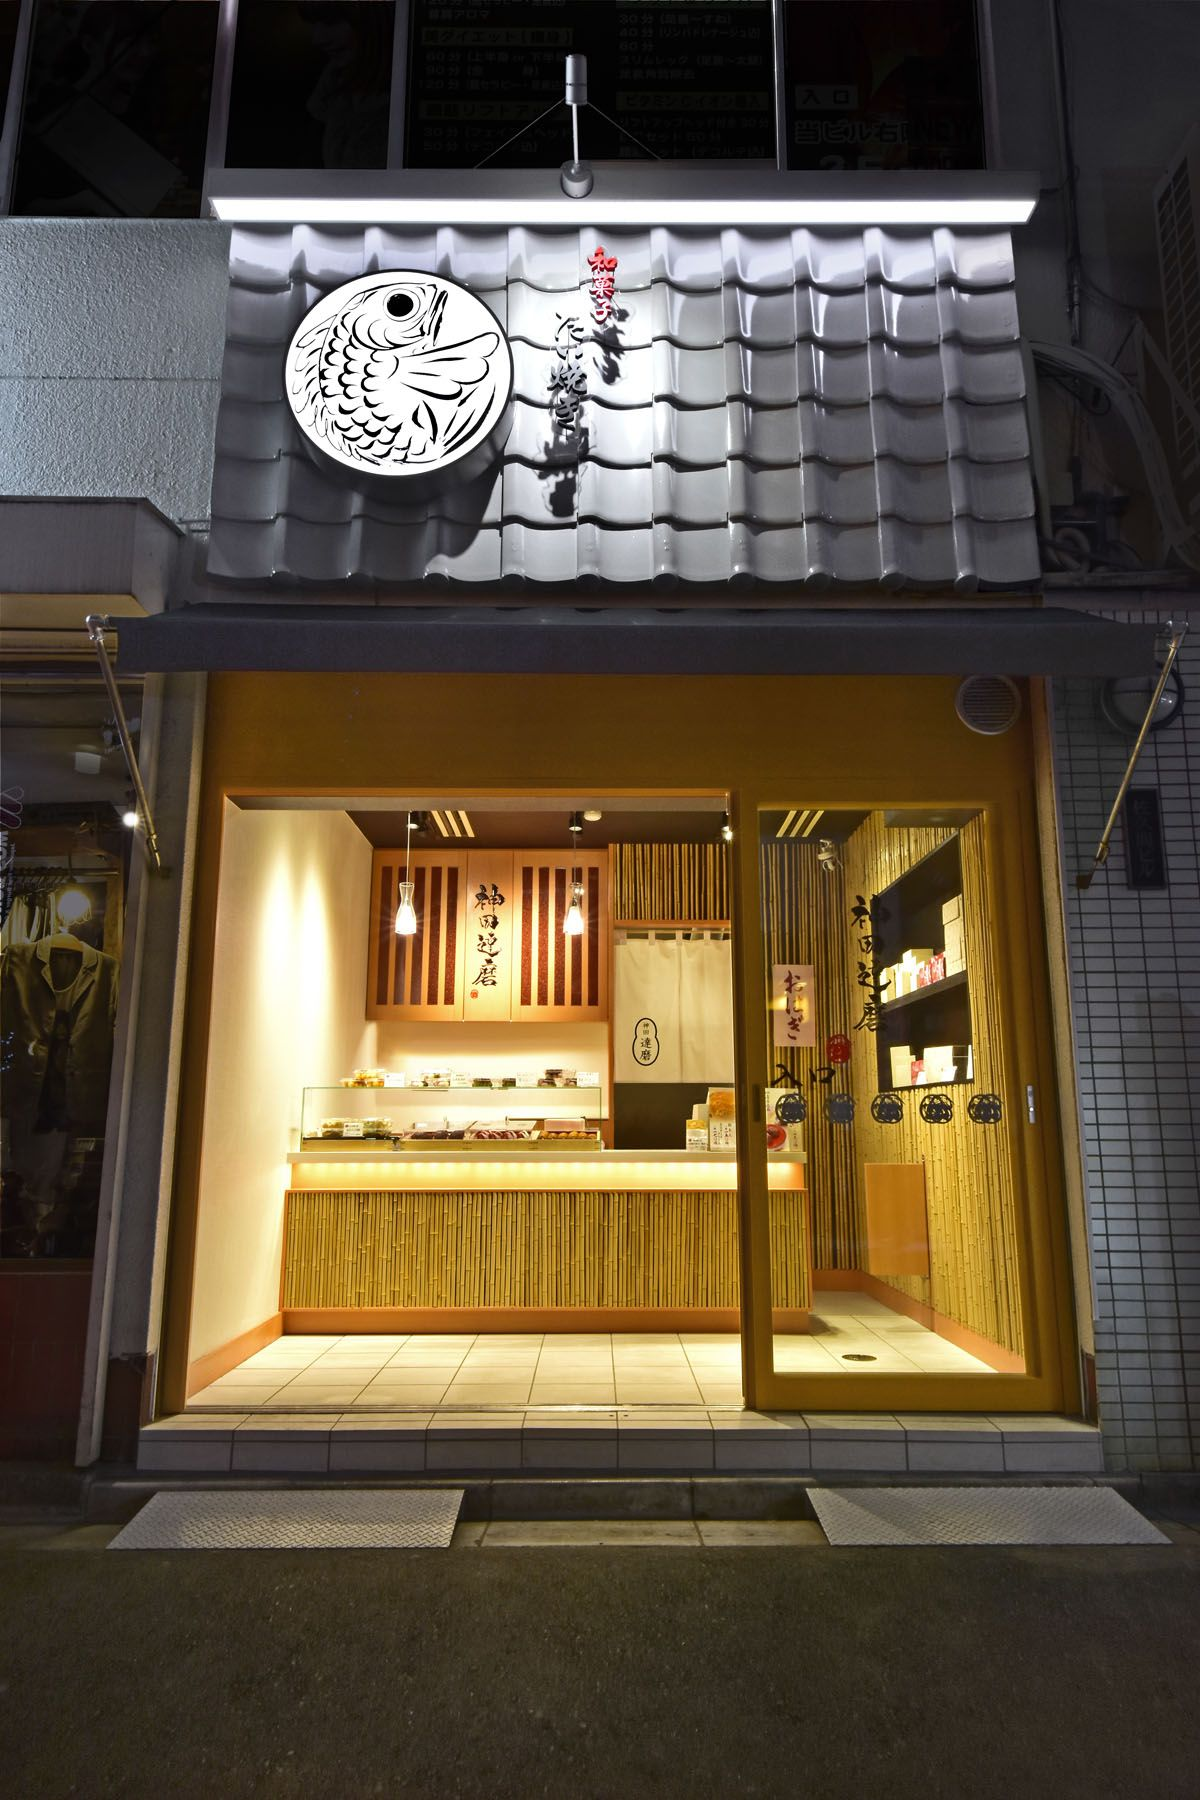 10 Kitchen And Home Decor Items Every 20 Something Needs: Japanese Sweets TAIYAKI …